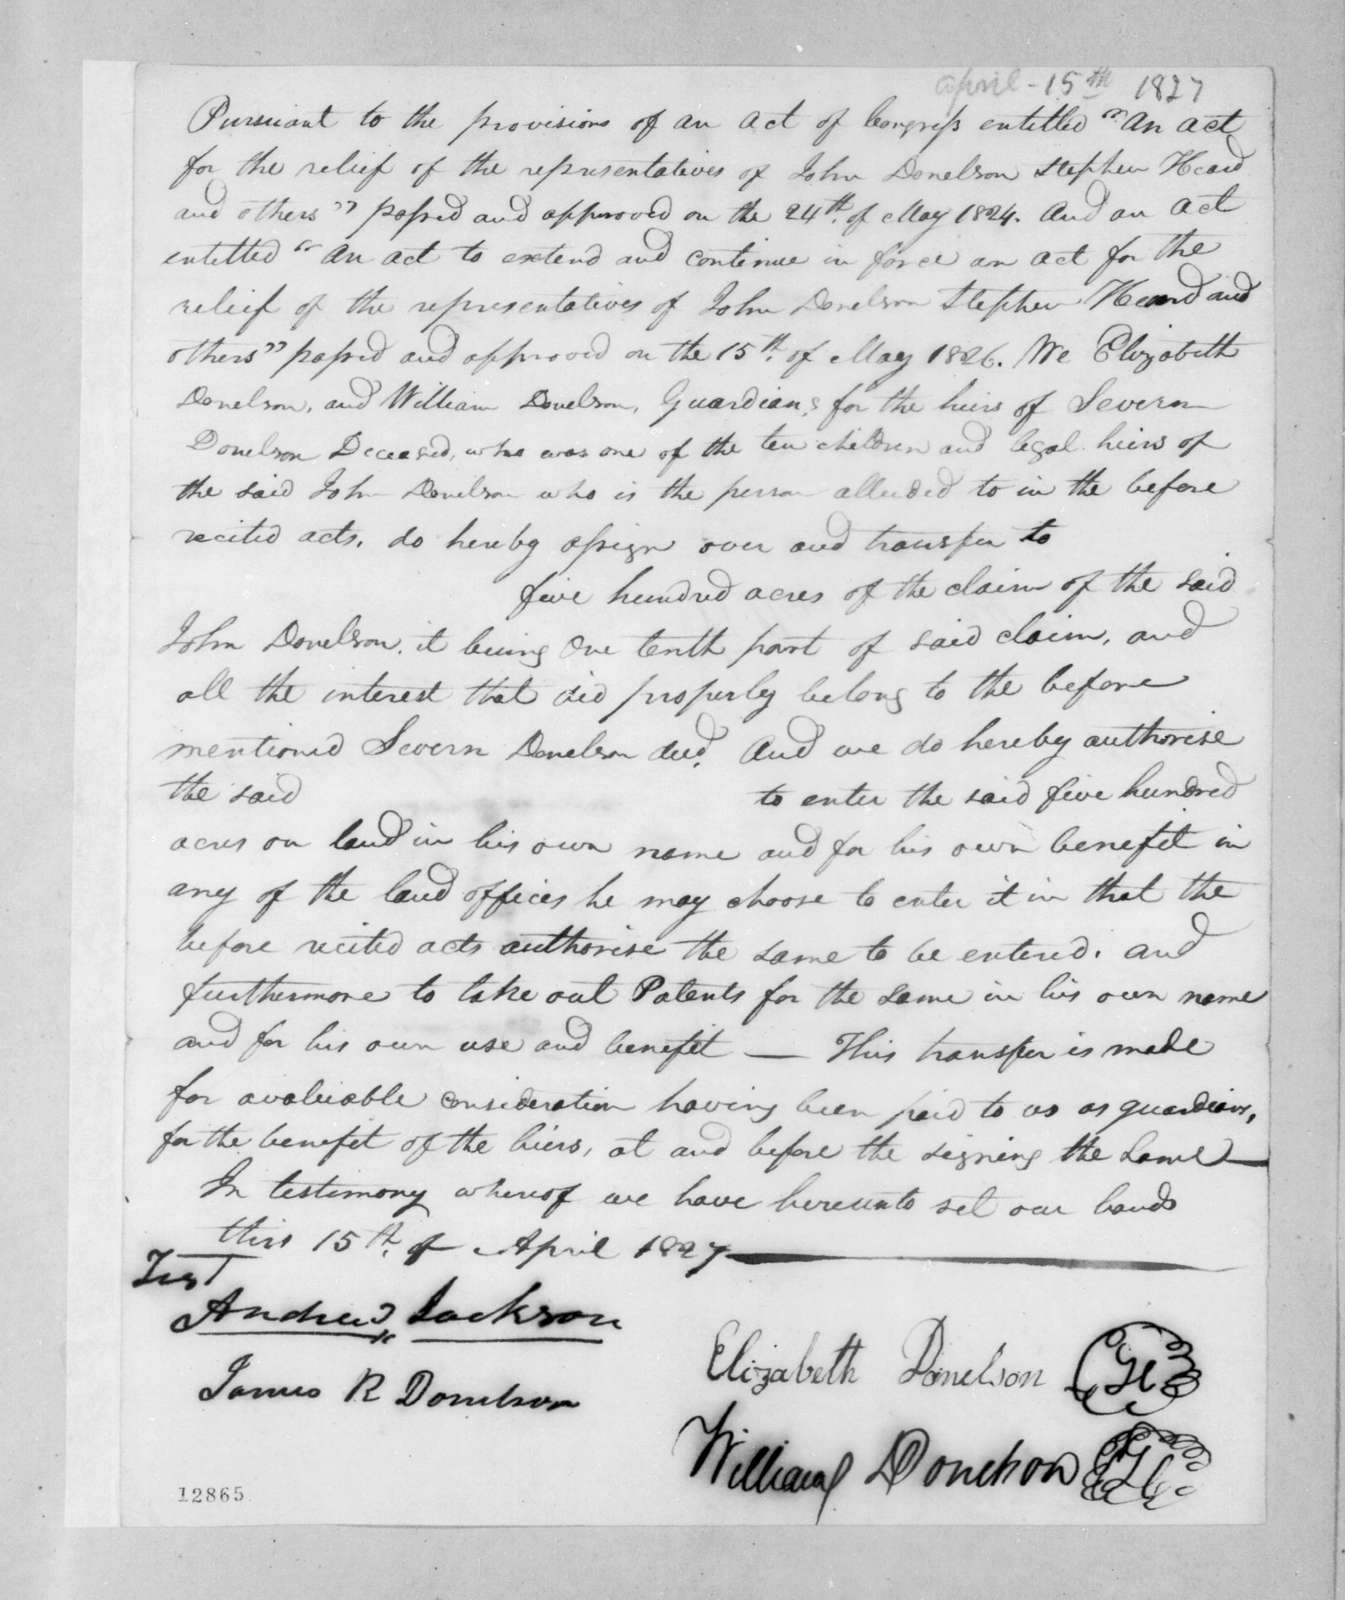 Elizabeth Donelson to William Donelson, April 15, 1827